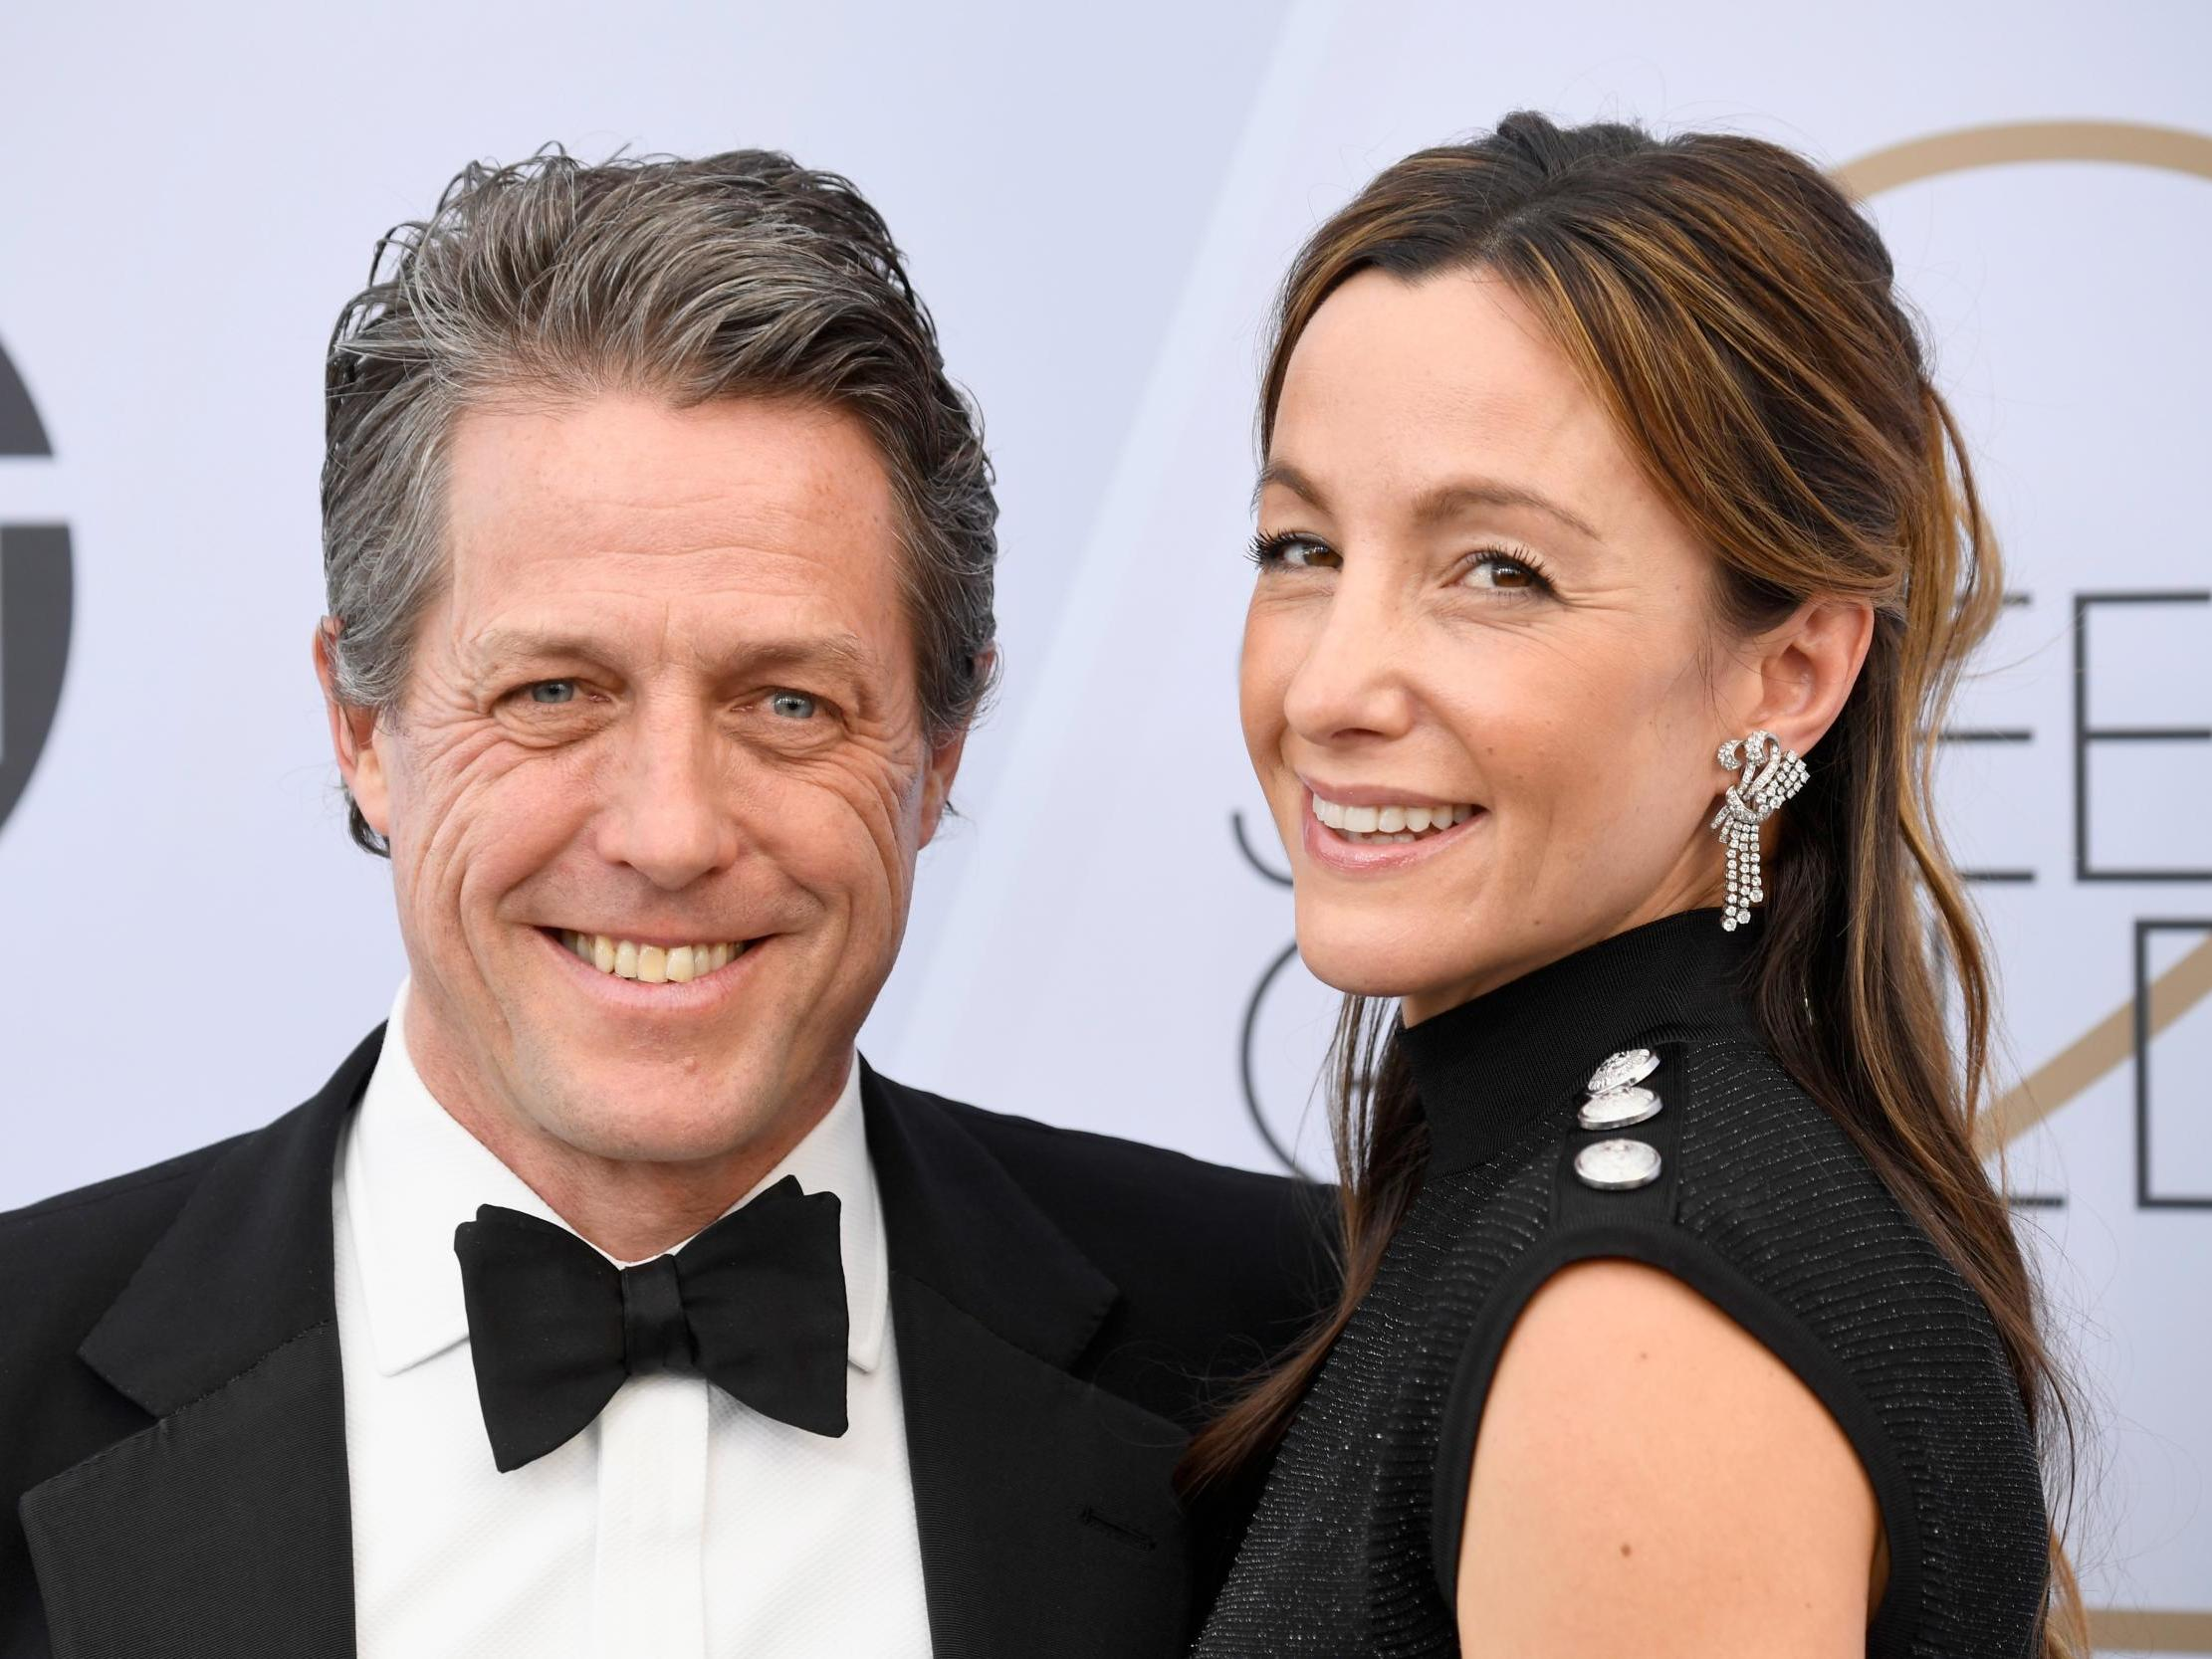 Hugh Grant Says He Was Plain Wrong About Views On Marriage And Children The Independent The Independent